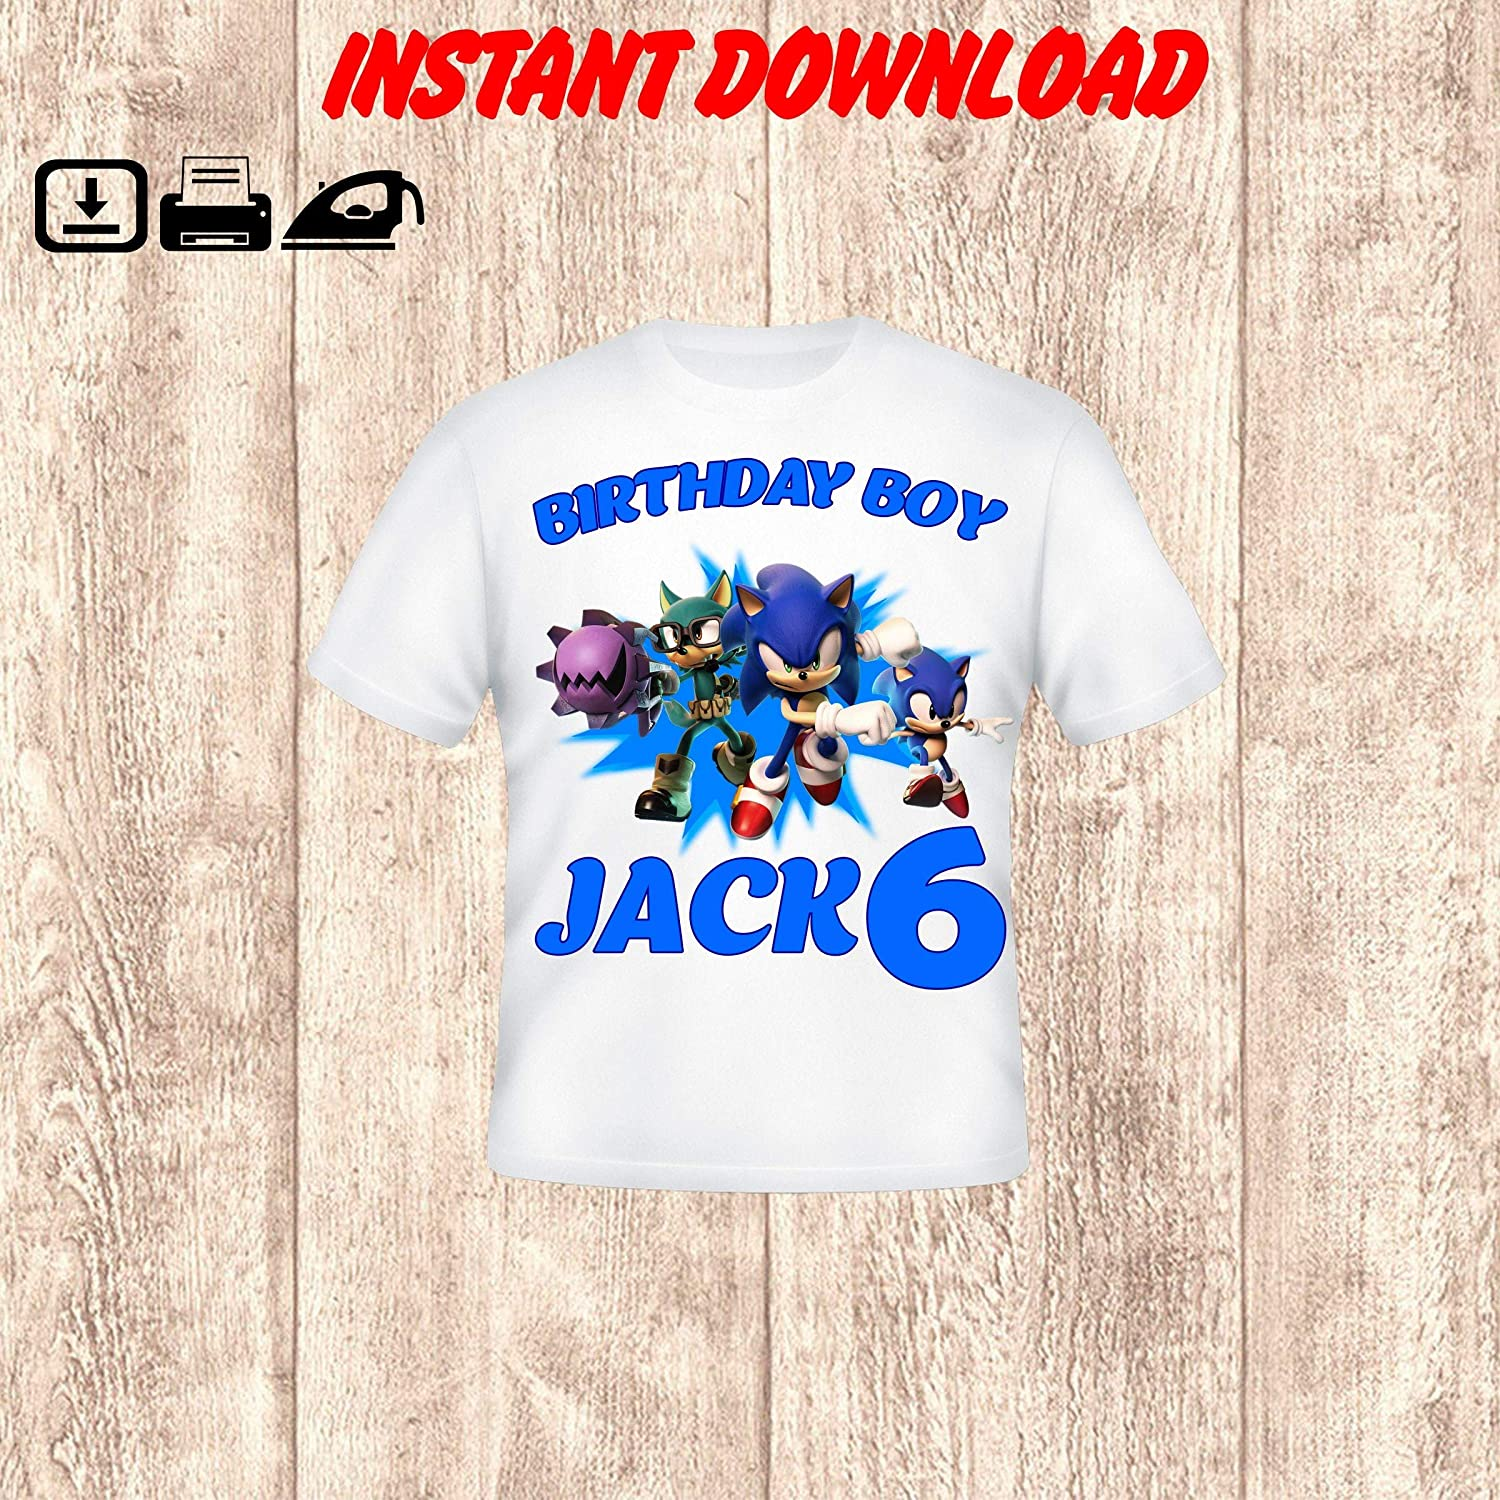 Amazon Com Sonic Birthday Boy Iron On Transfer Sonic The Hedgehog Transfer For Shirts Sonic Family Birthday Shirt Sonic The Hedgehog Boy Shirt Digital Handmade